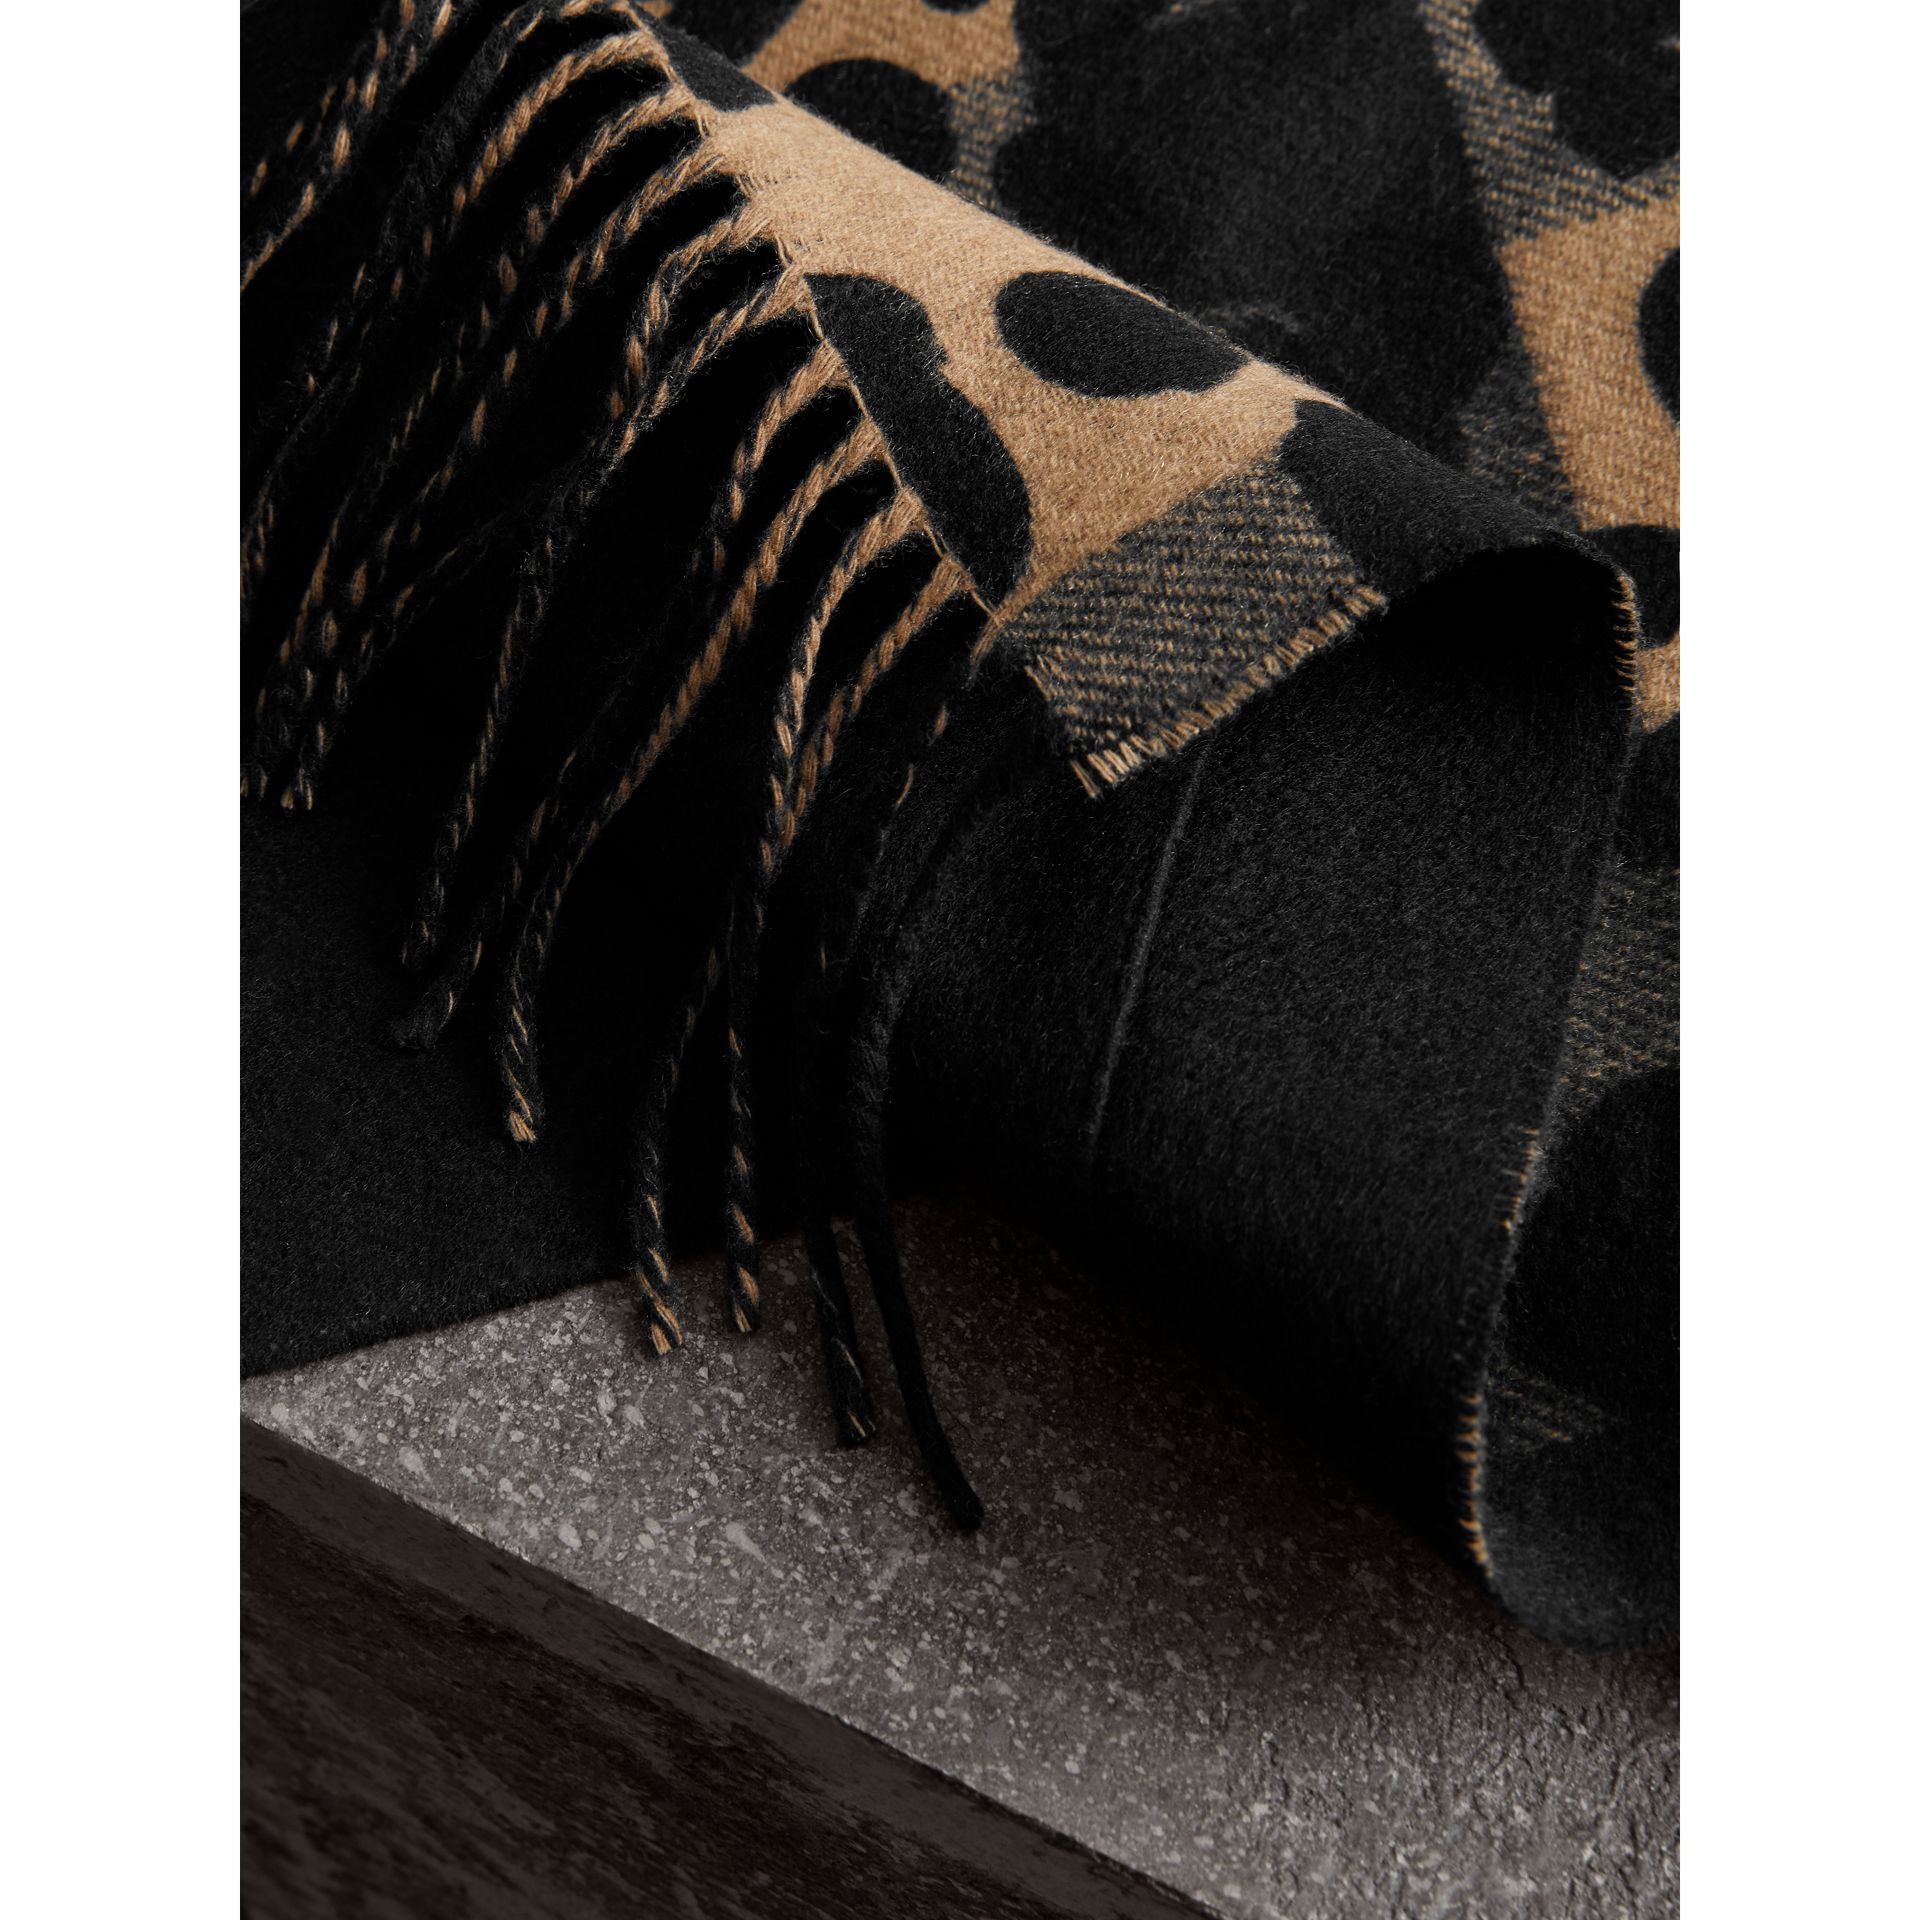 Animal Pattern Merino Wool Cashmere Stole in Camel - Women | Burberry United States - gallery image 2